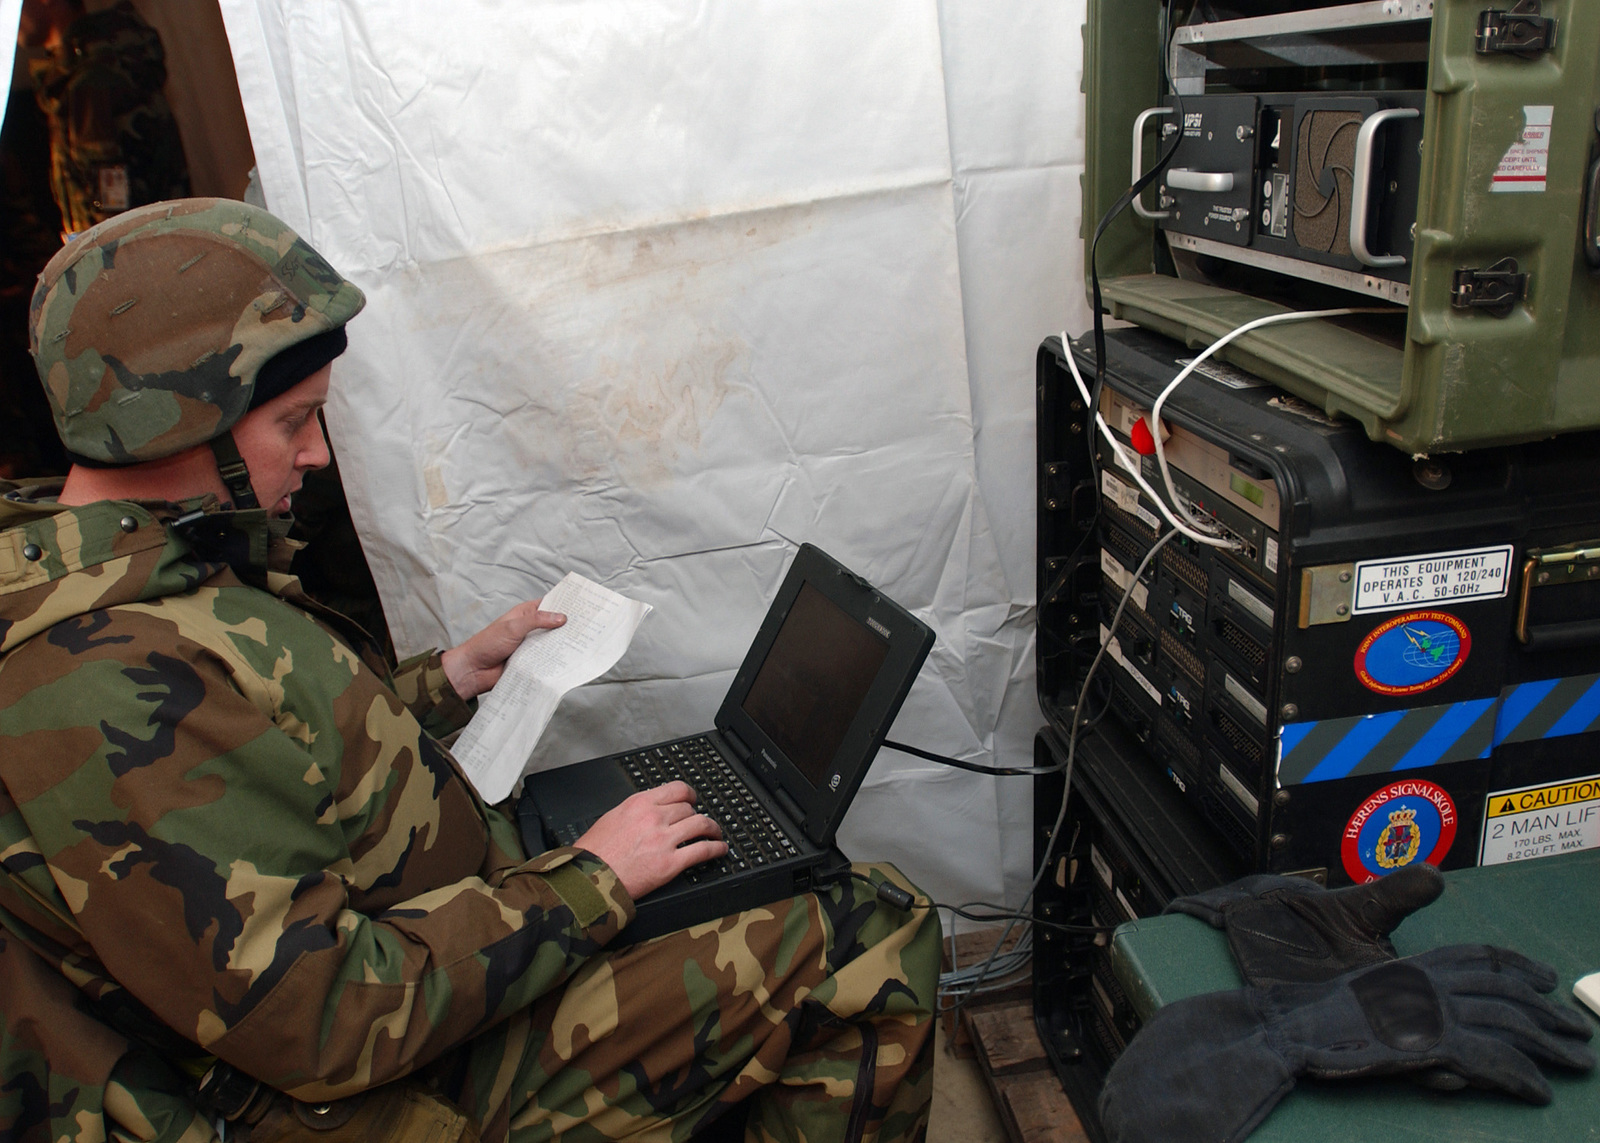 US Air Force (USAF) STAFF Sergeant (SSGT) Mark Lyons, a Communications Computer Systems Operator (CCSO), with the 31st Communications Squadron (CS), Aviano Air Base (AB), Italy (ITA), fixes a laptop during Exercise Silver Flag. The purpose of exercise Silver Flag is to equip a deployable communications team with the essential knowledge and skills to establish communications at a bare base site